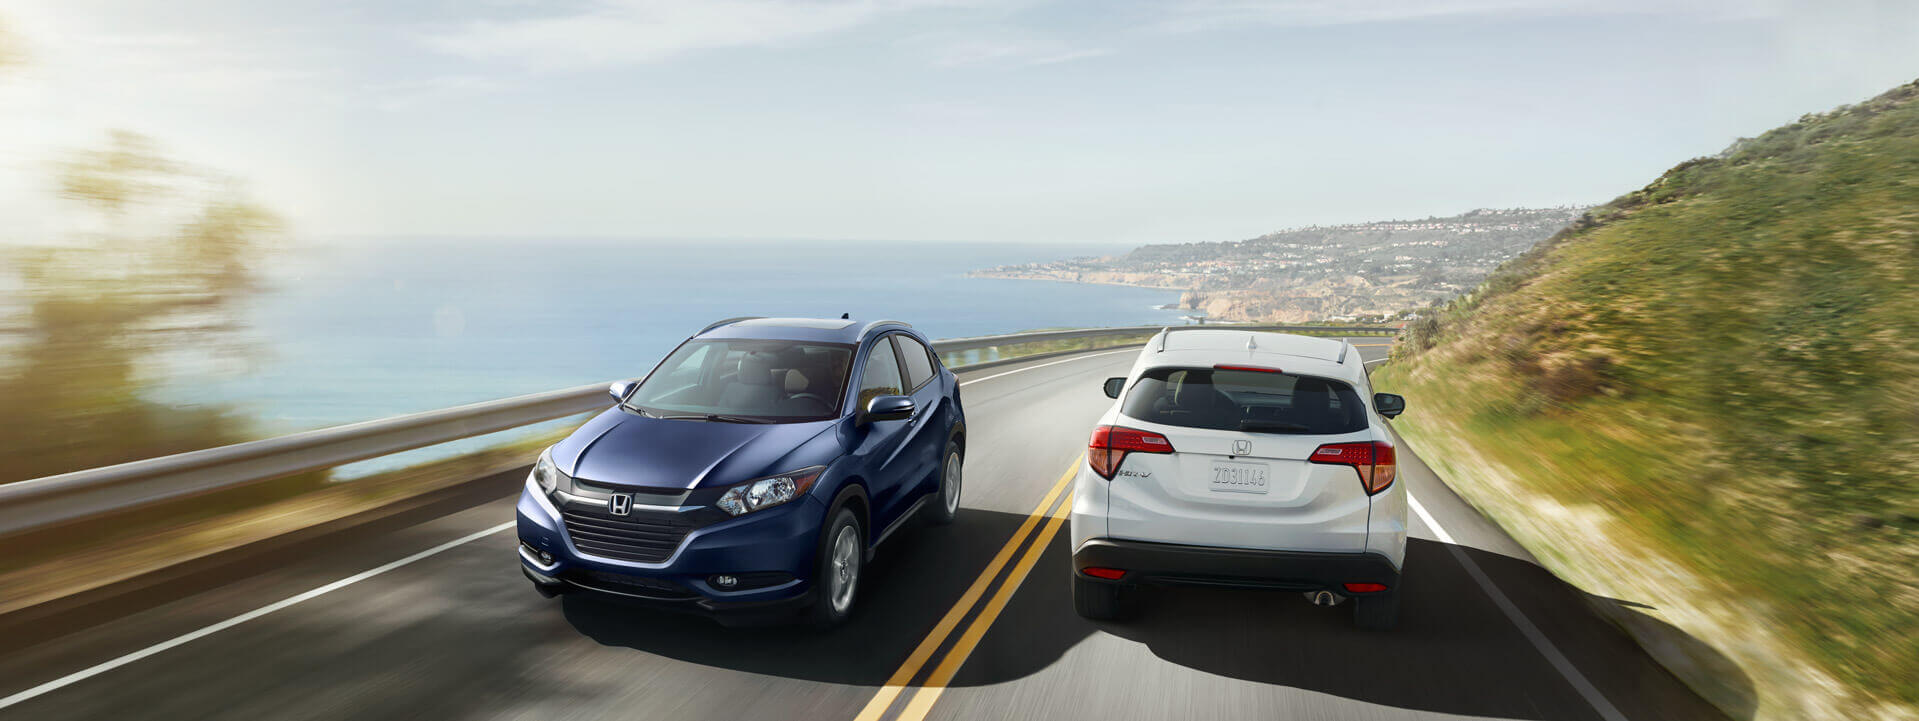 Detroit Drivers Looking For Some Of The Best Crossover SUVs On The Road,  Youu0027ll Find Two Worthy Options At A Nearby Detroit Area Honda Dealer: The  2016 ...